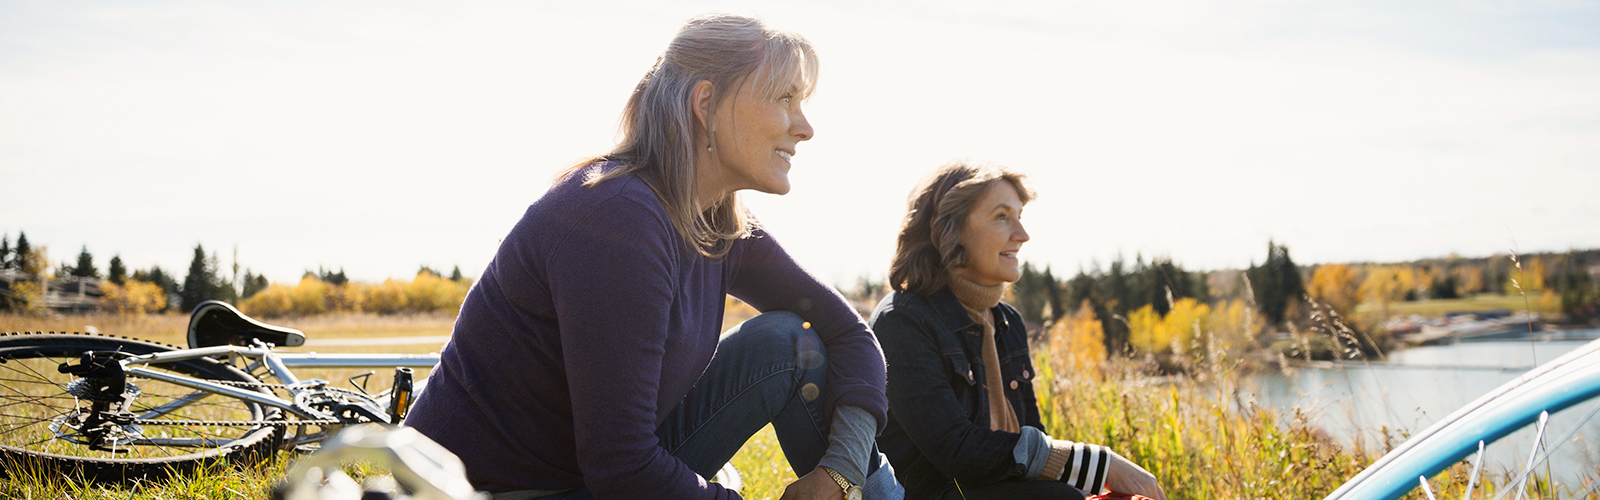 Two women with bicycles are sitting in the grass having a rest in a sunny field